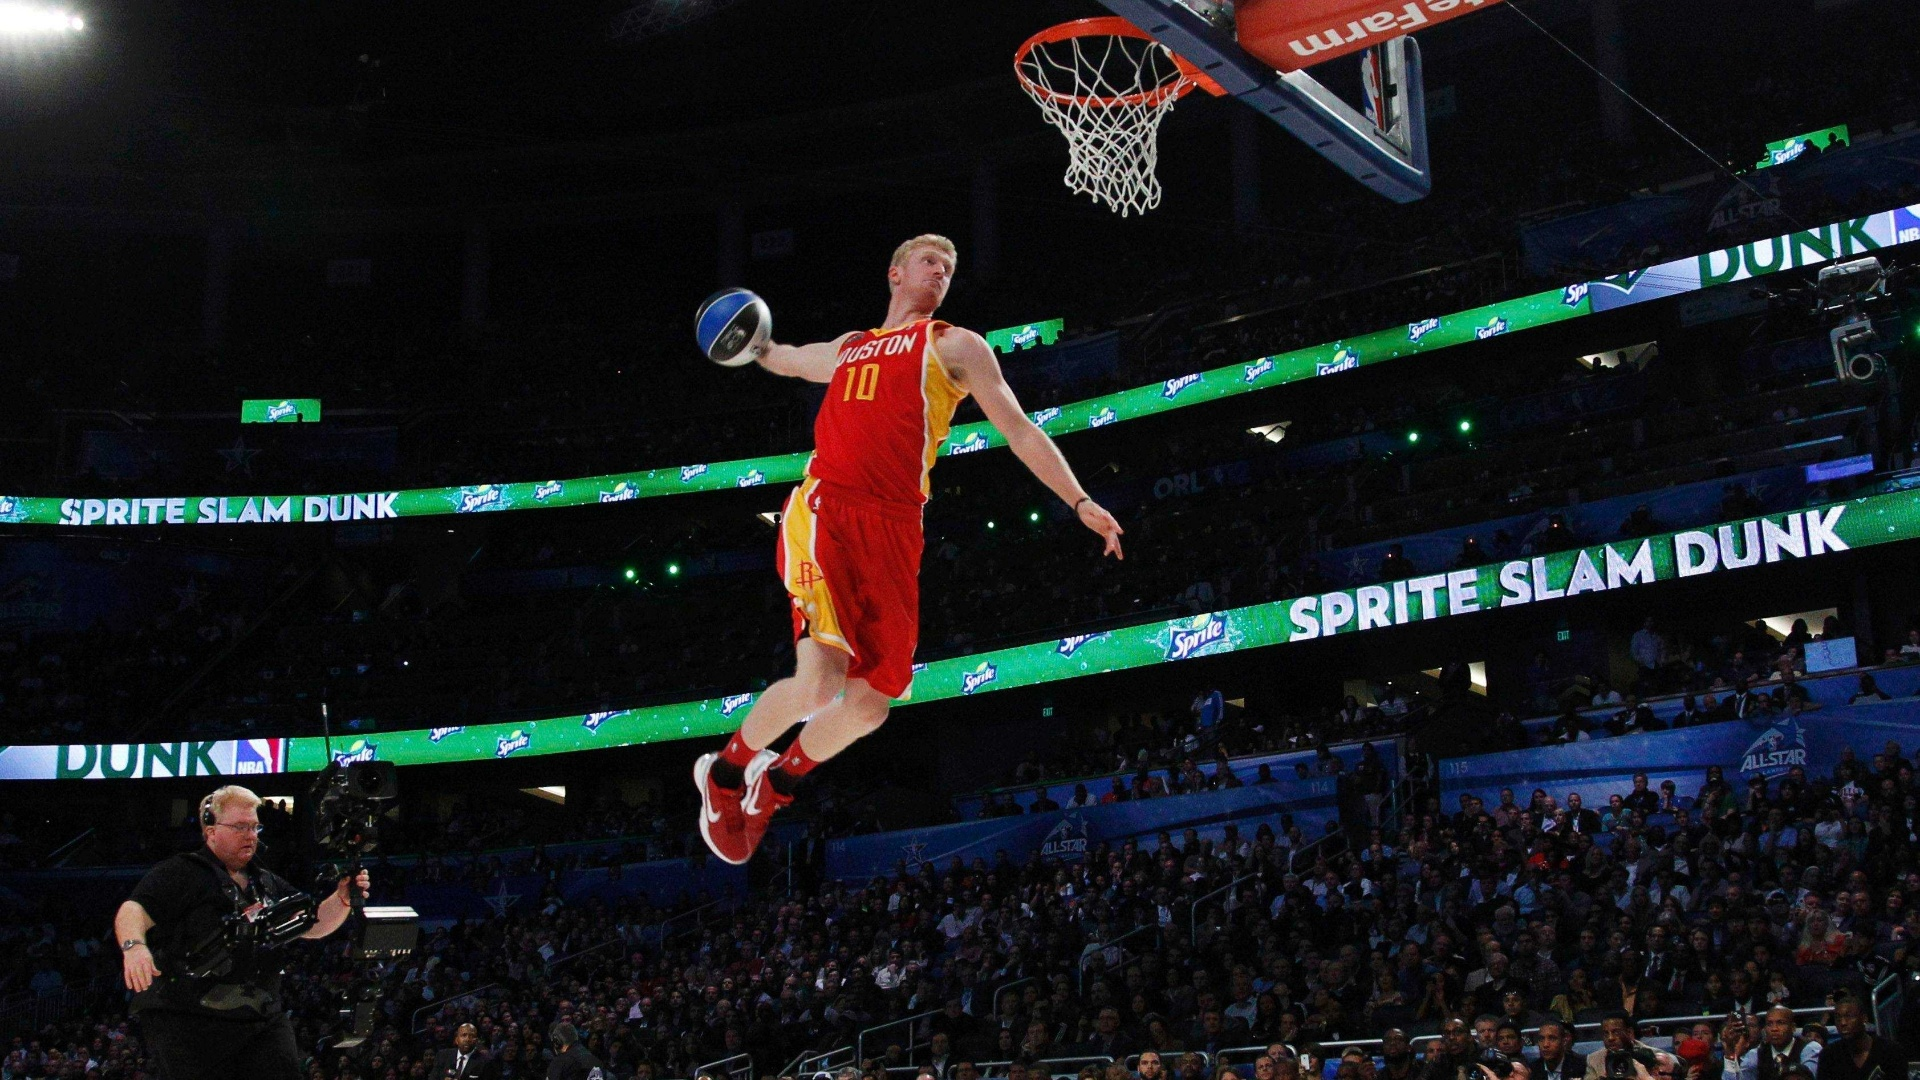 Chase Budinger, do Houston Rockets, voa para a cesta no Concurso de Enterradas